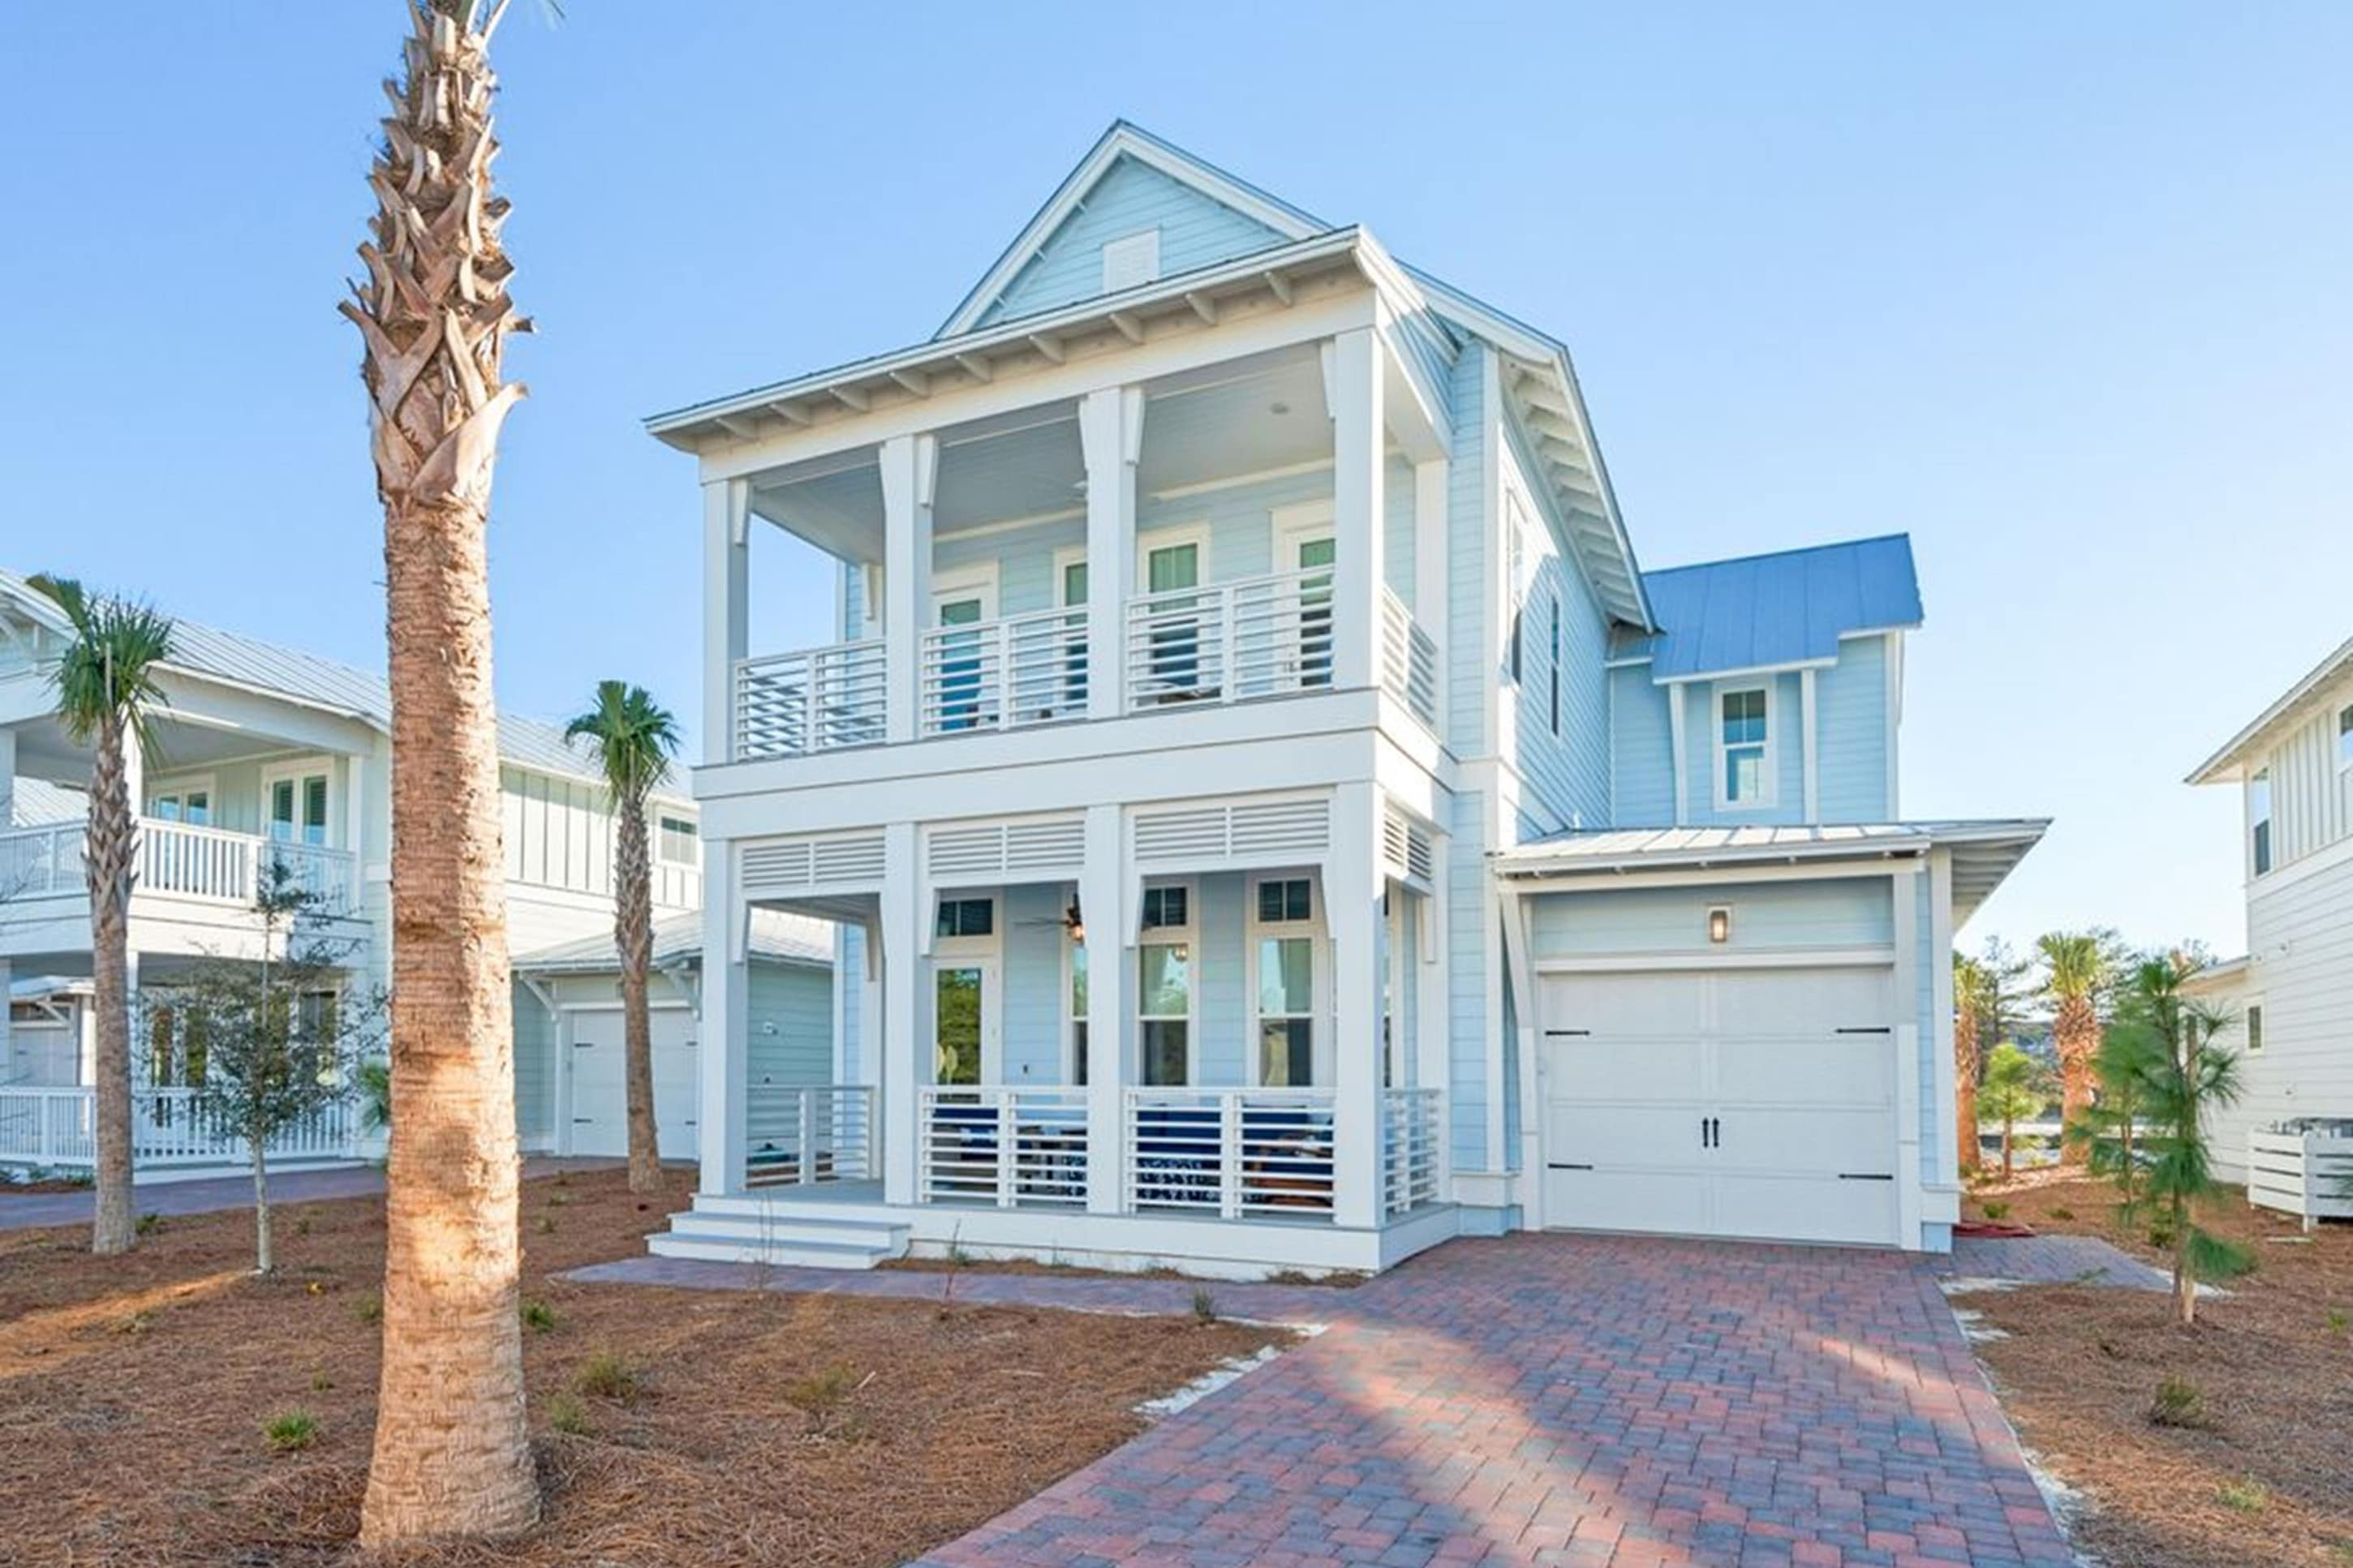 30A Vacation Rentals in Florida  Prominence on 30A